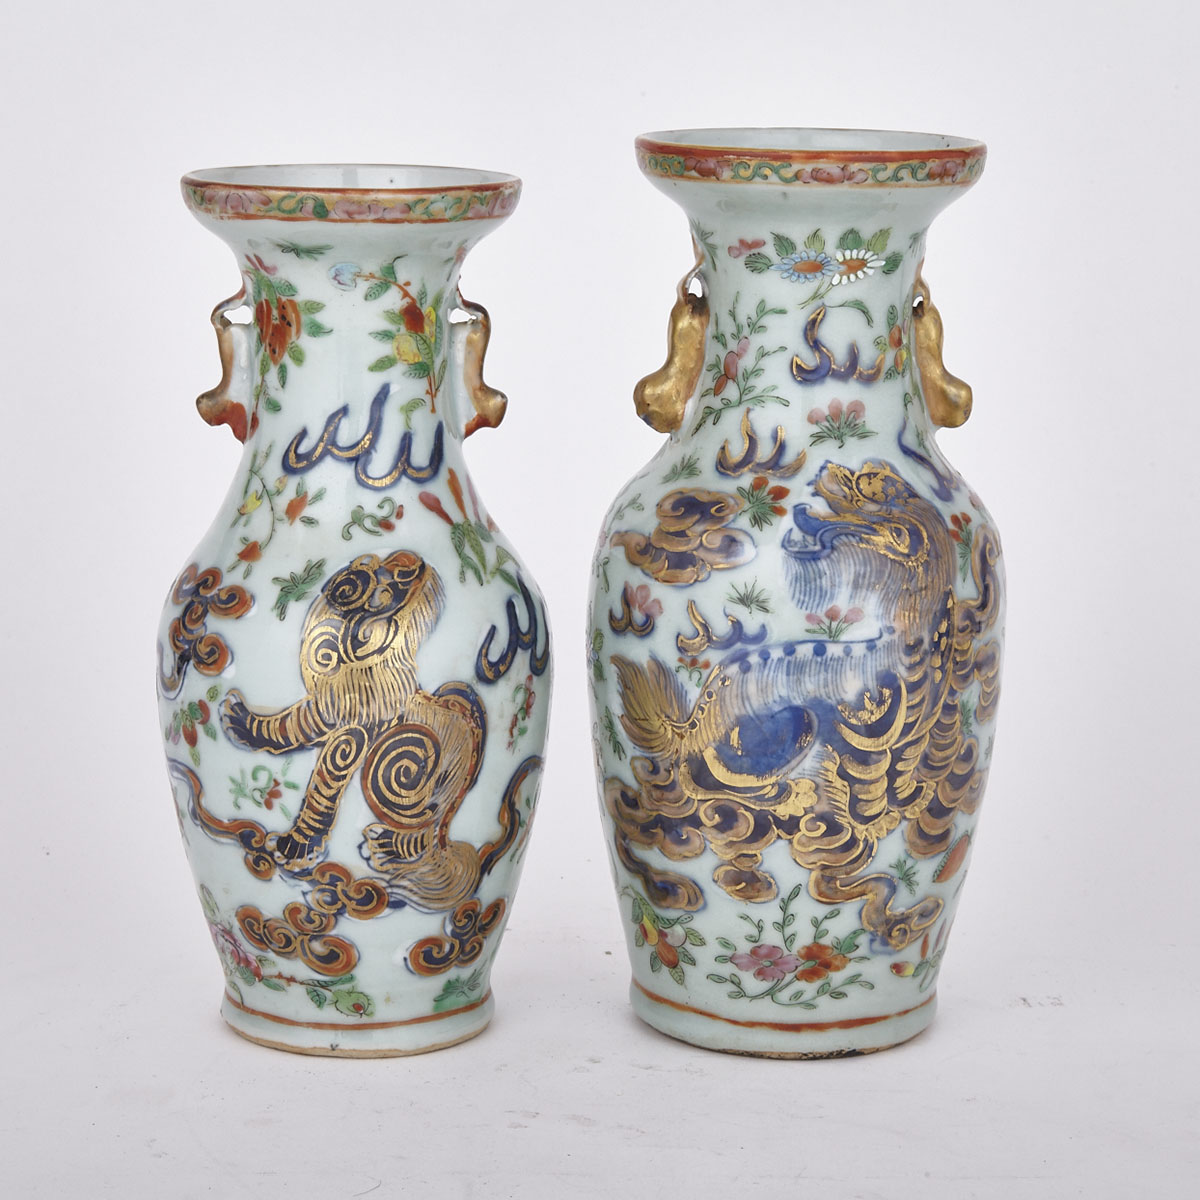 Pair of Export 'Clobbered' Famille Rose Baluster Vases, 19th Century